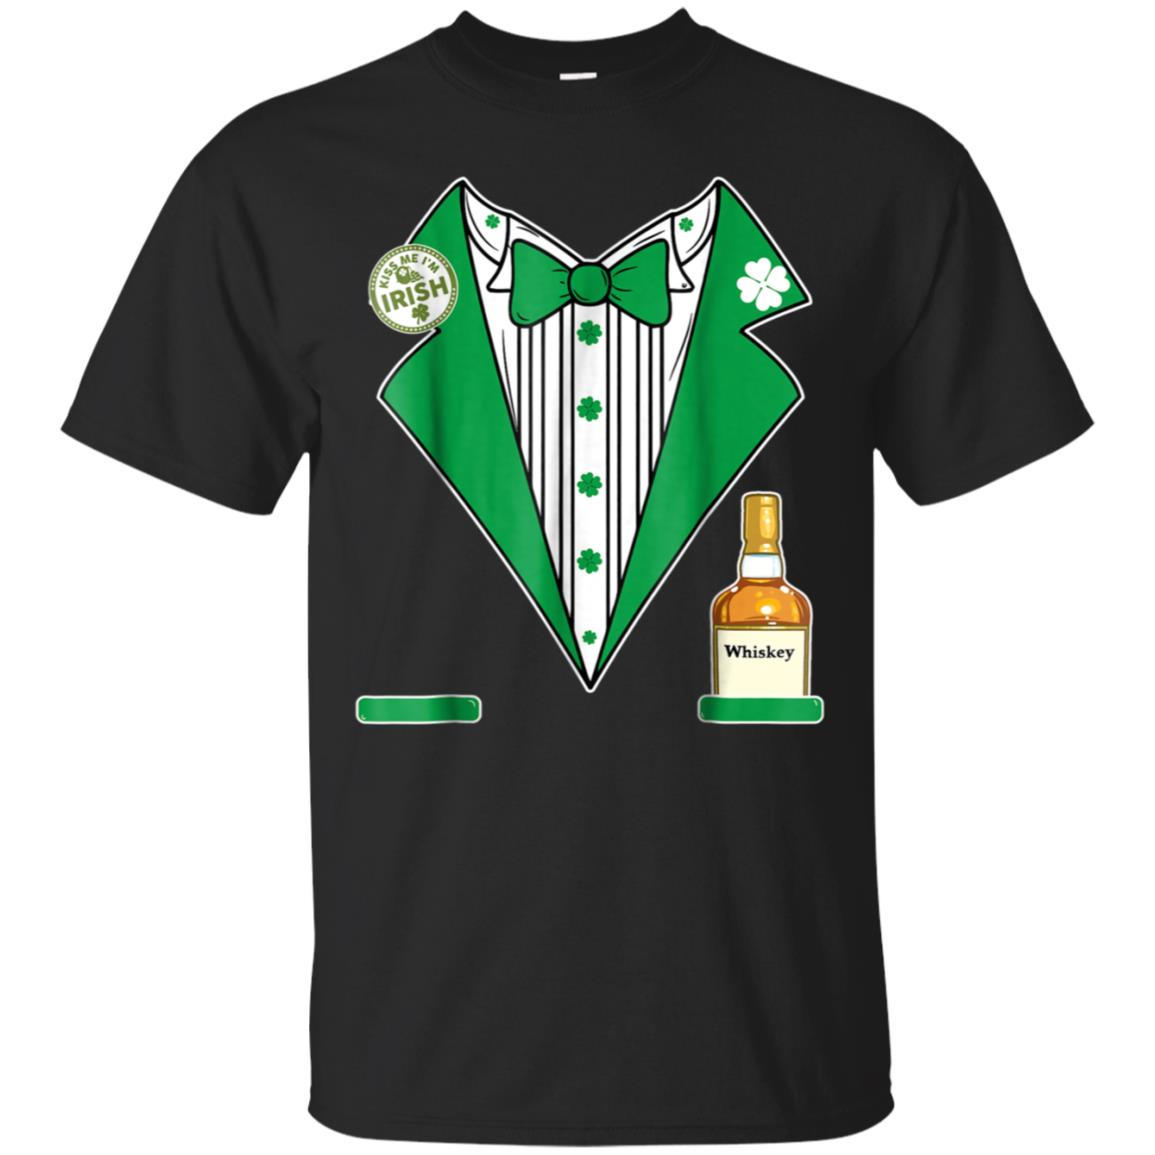 St. Patricks Day Tux Whiskey Shirt Green Pattys Day Costume 99promocode